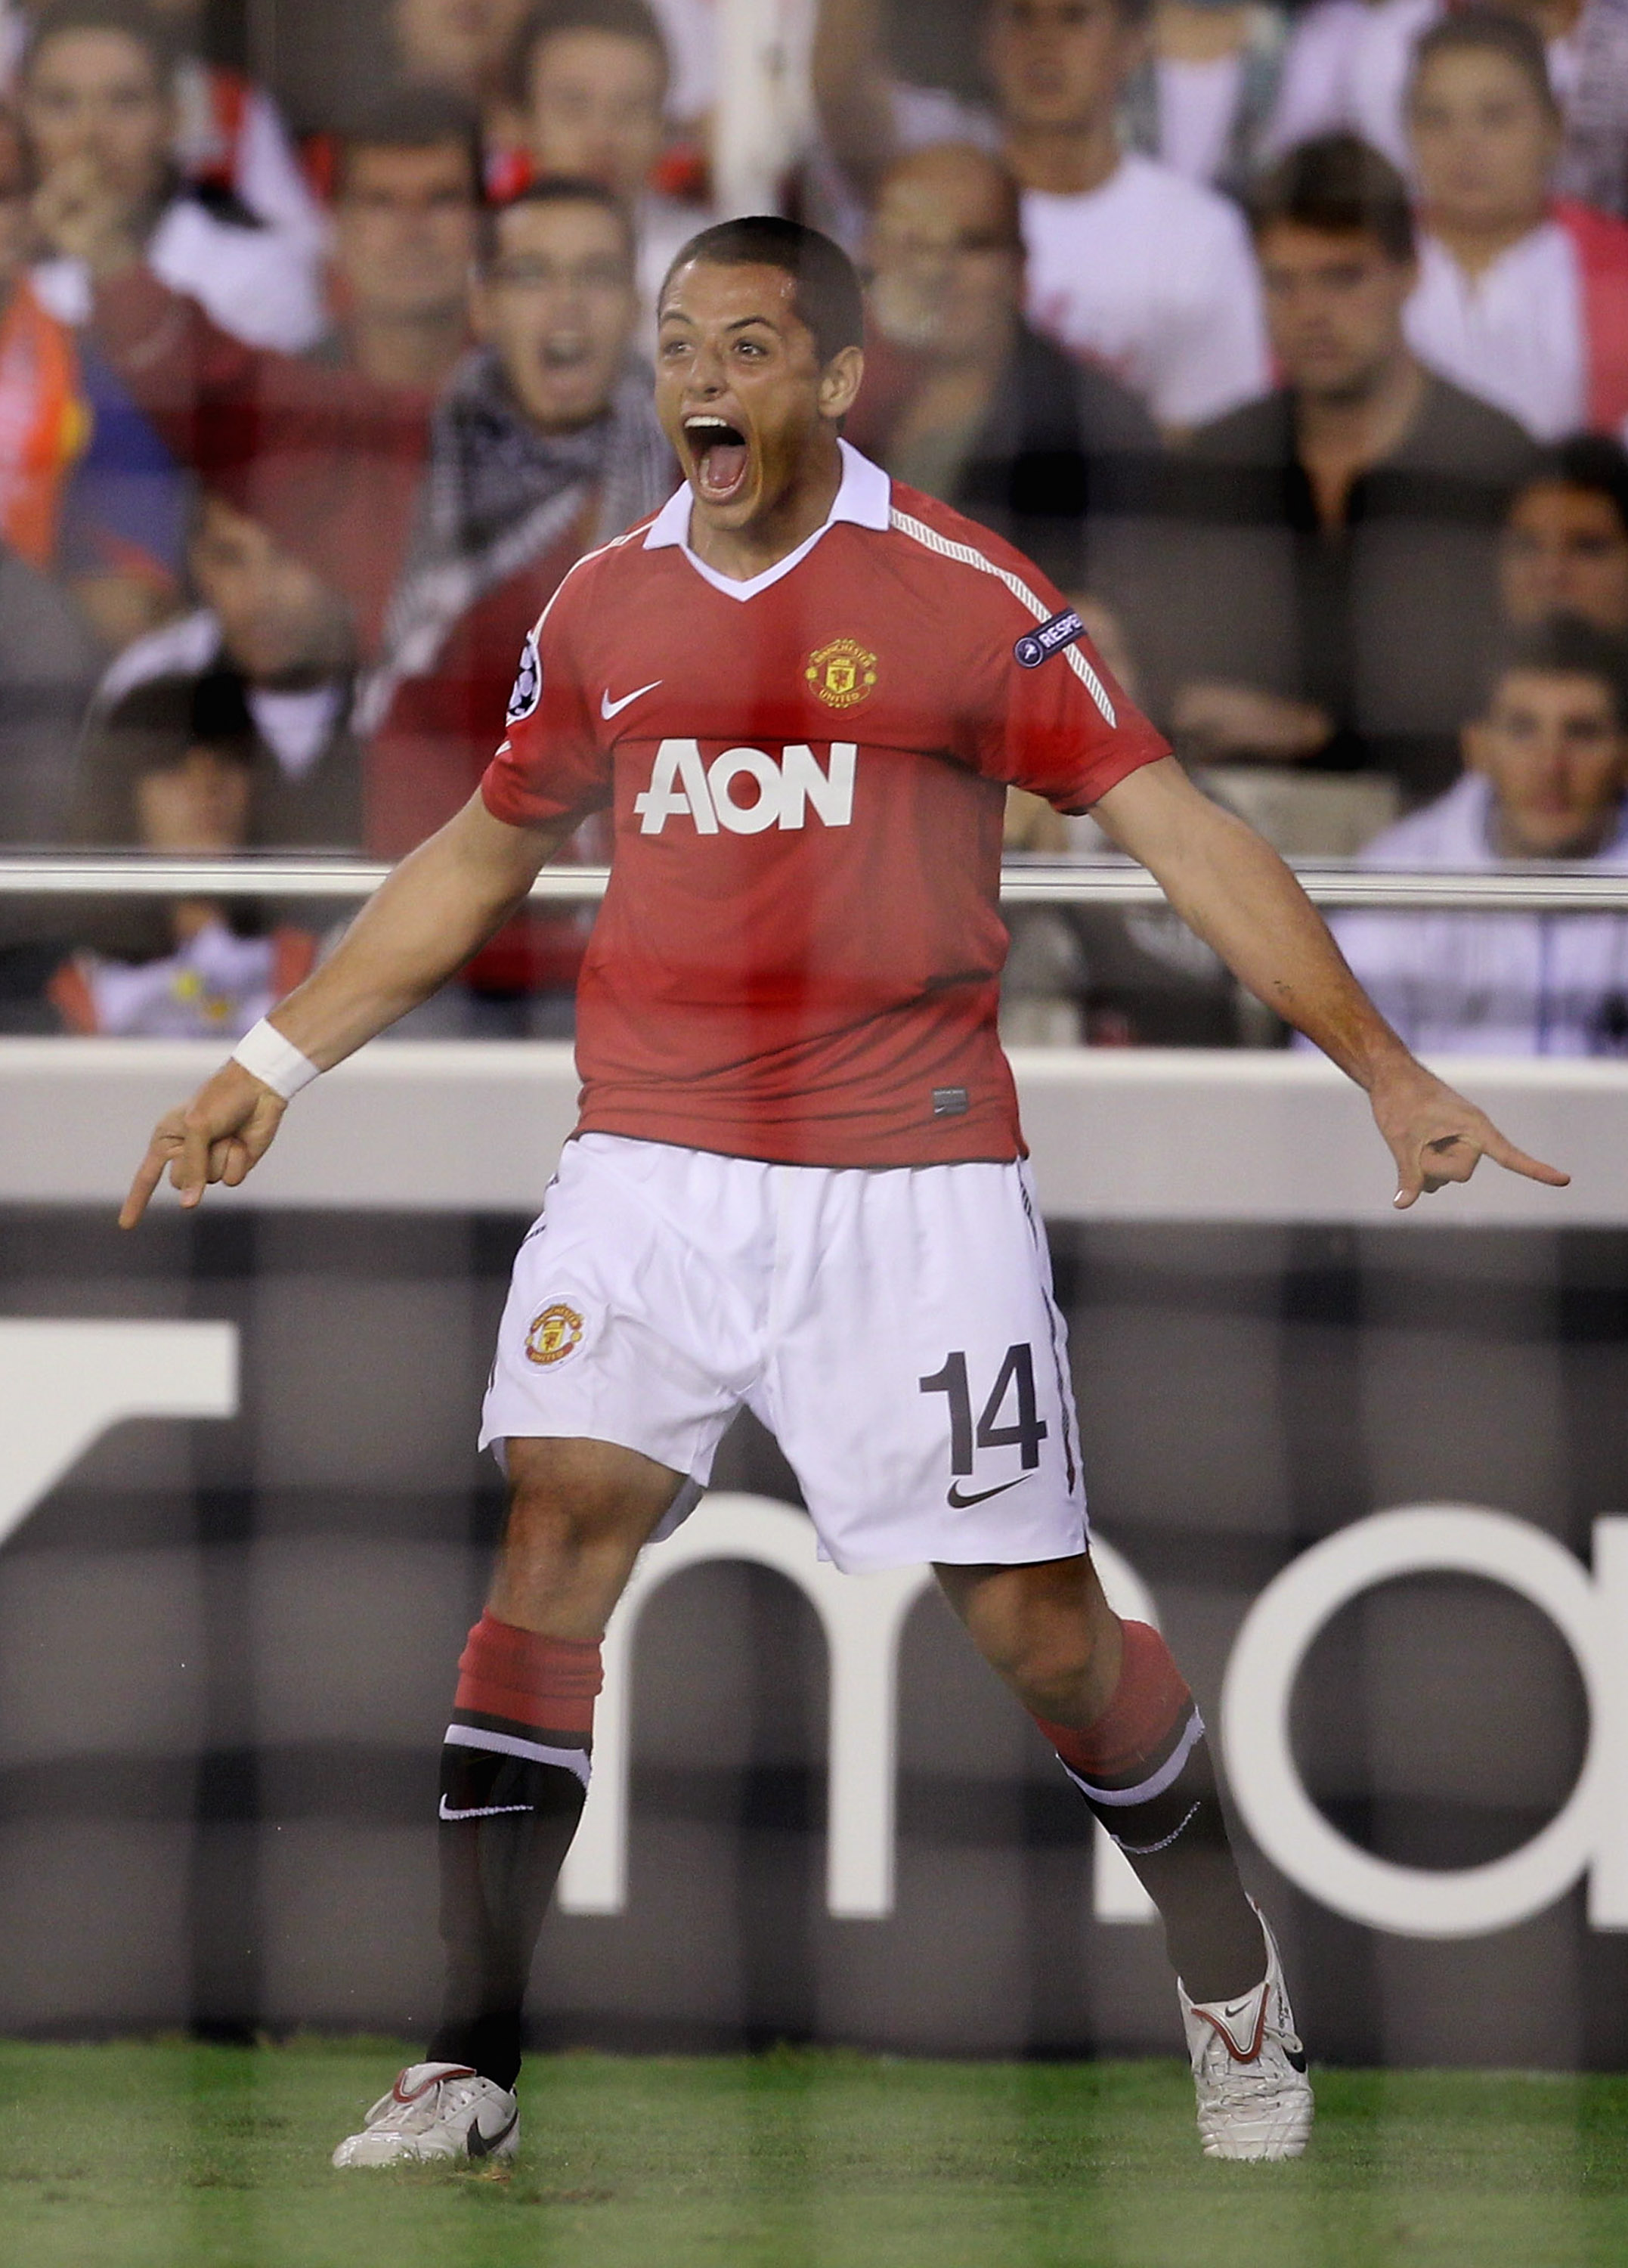 VALENCIA, SPAIN - SEPTEMBER 29:  Javier Hernandez of Manchester United celebrates after scoring the opening goal during the UEFA Champions League Group C match between Valencia and Manchester United at the Mestalla Stadium on September 29, 2010 in Valenci